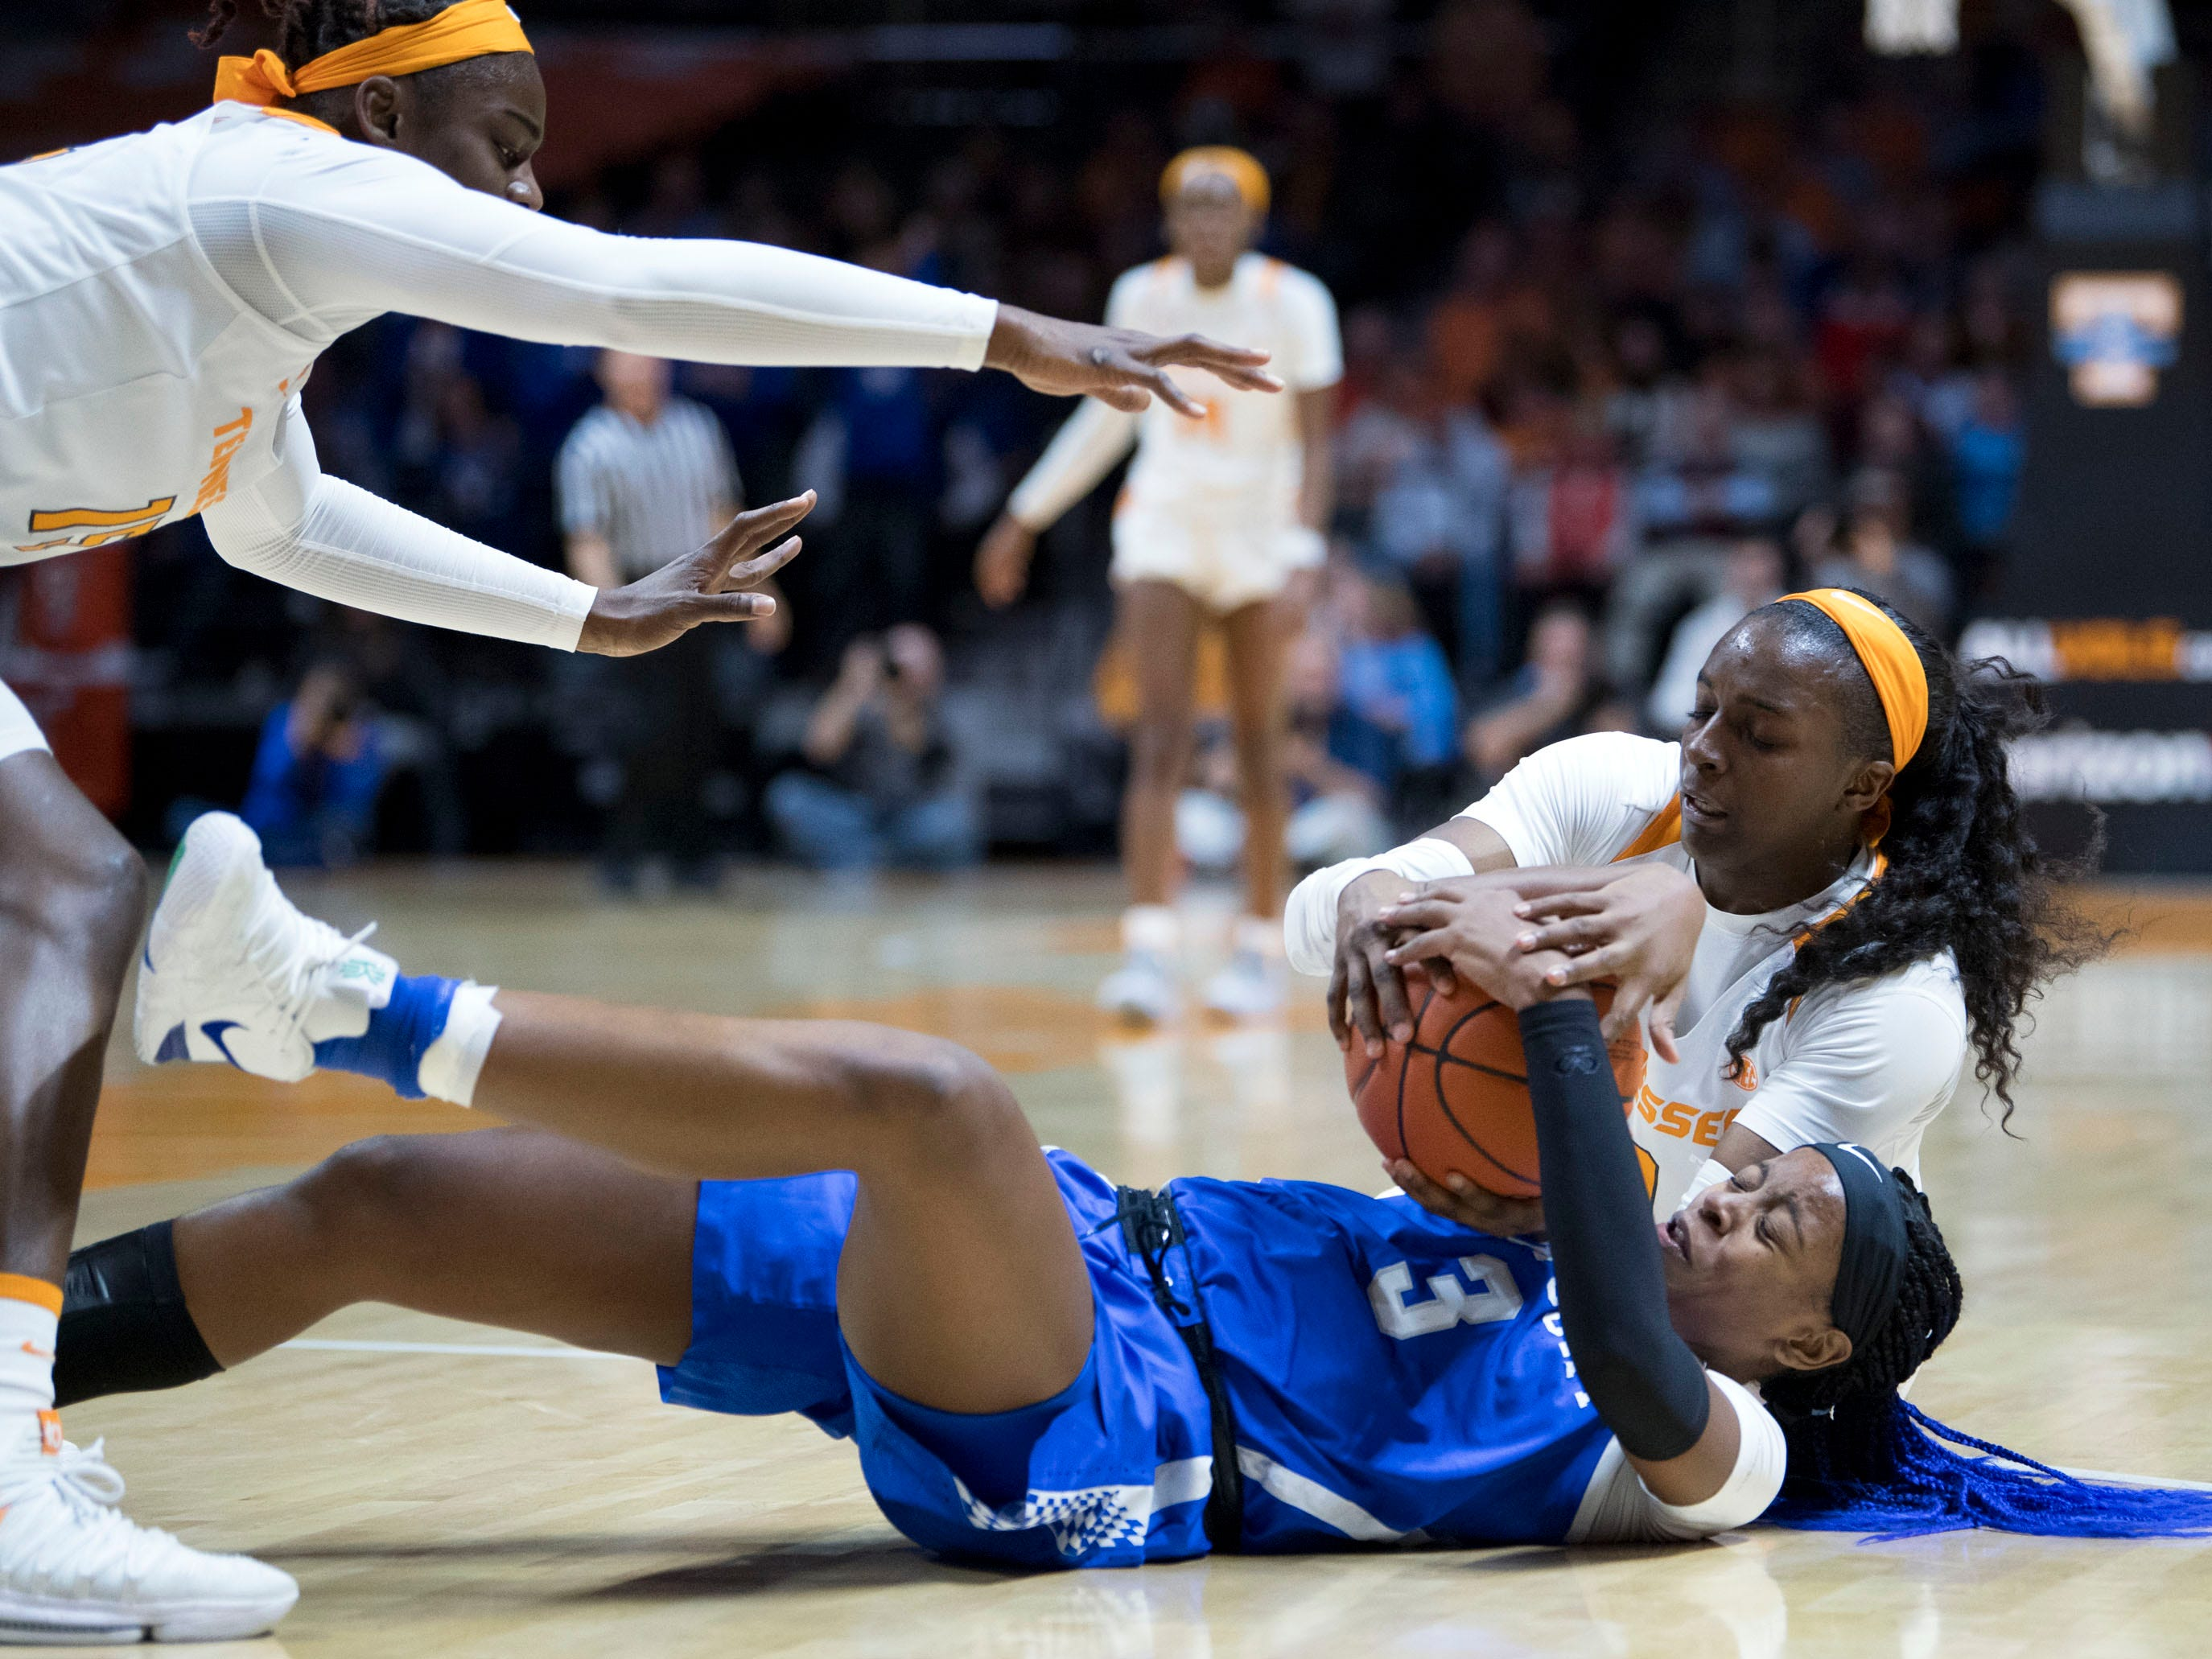 Kentucky's KeKe McKinney (3) tries to protect the ball from Tennessee's Meme Jackson (10) and an approaching Cheridene Green (15) on Thursday, January 10, 2019.